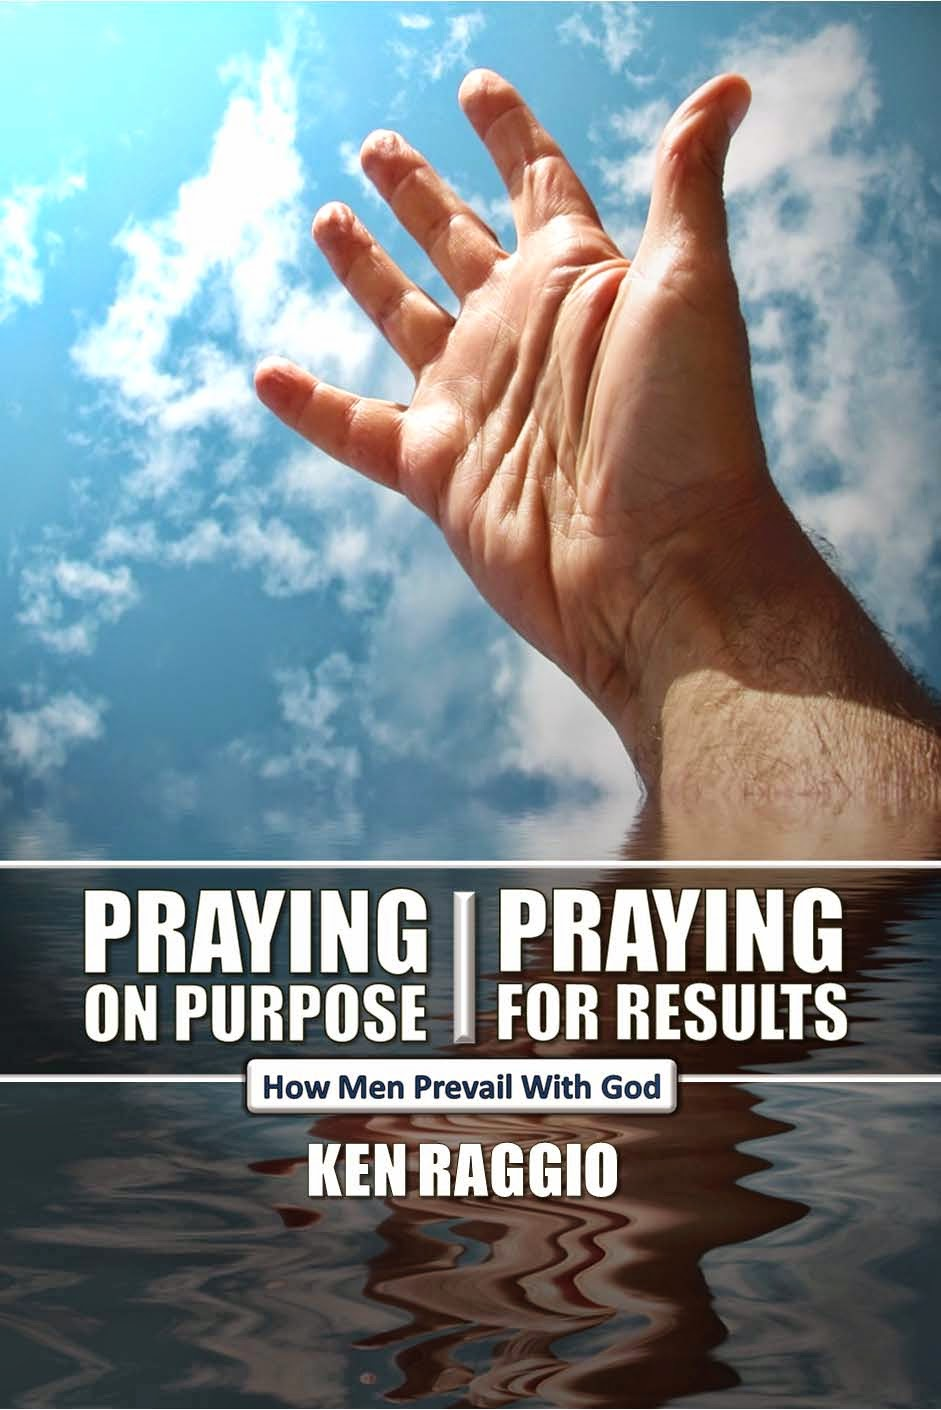 PRAYING ON PURPOSE